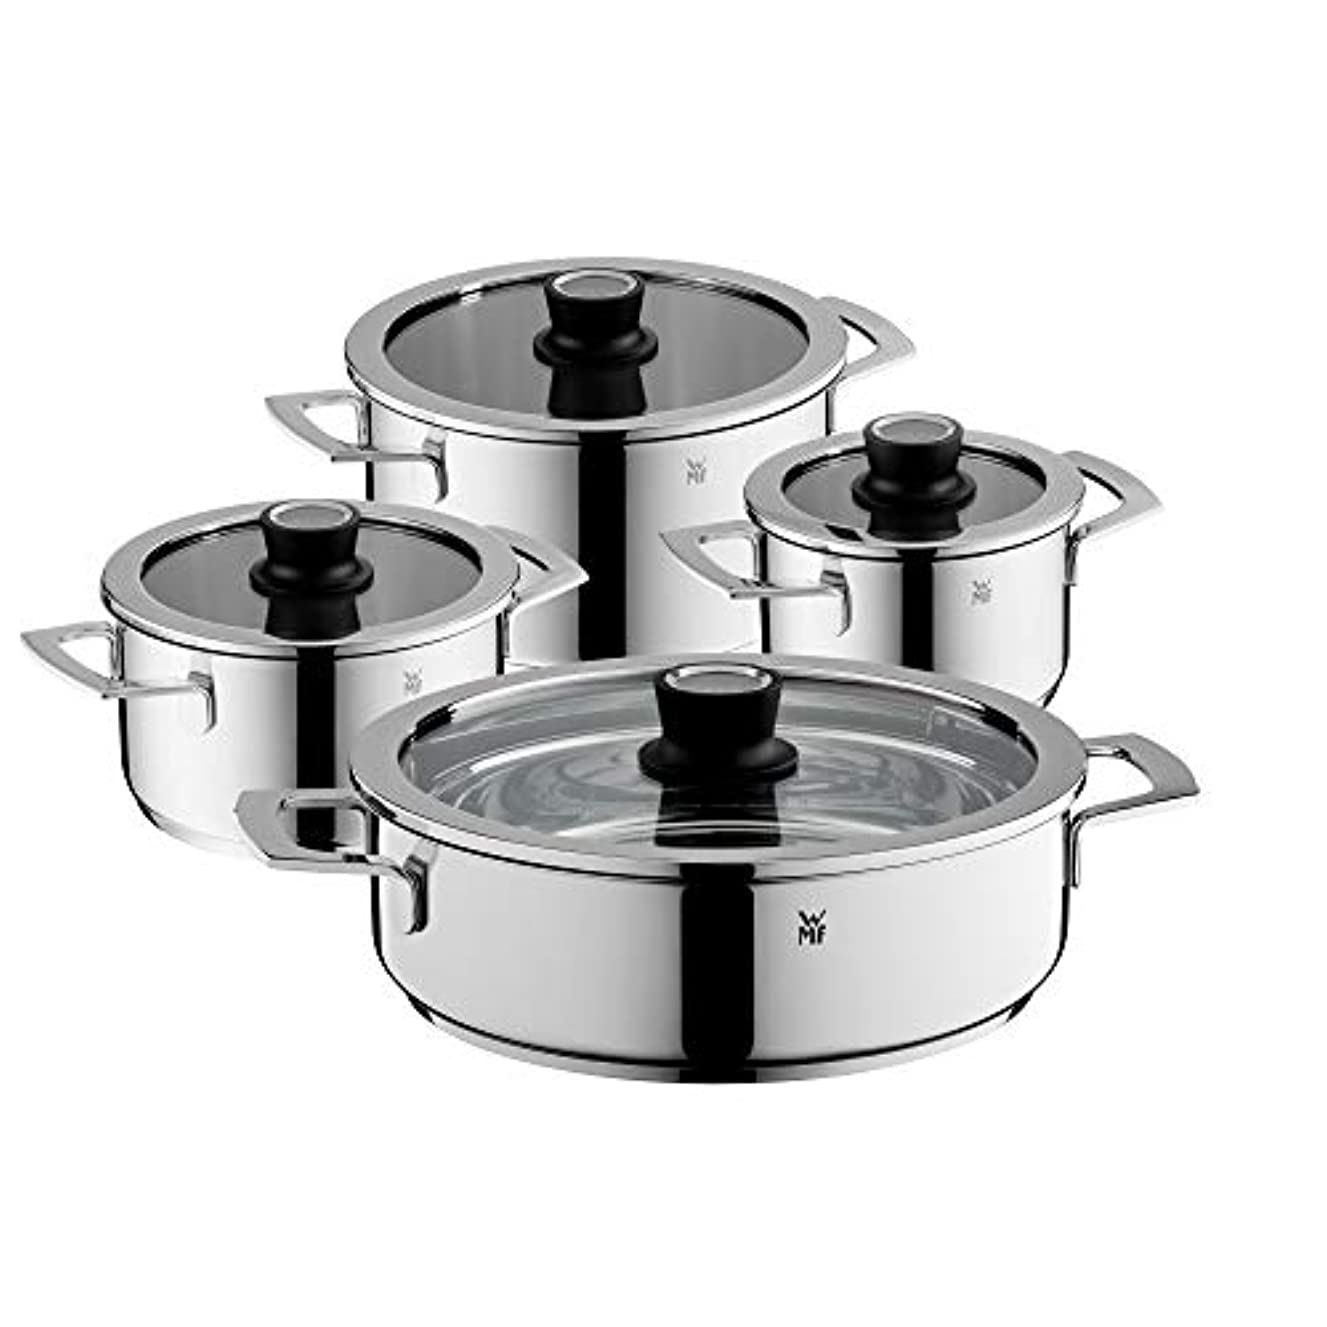 WMF Vari Ocuisine Saucepan Set, Set of 4?with Glass Lid and Thermometer, Stainless Steel, Silicone Rim, Dishwasher Safe